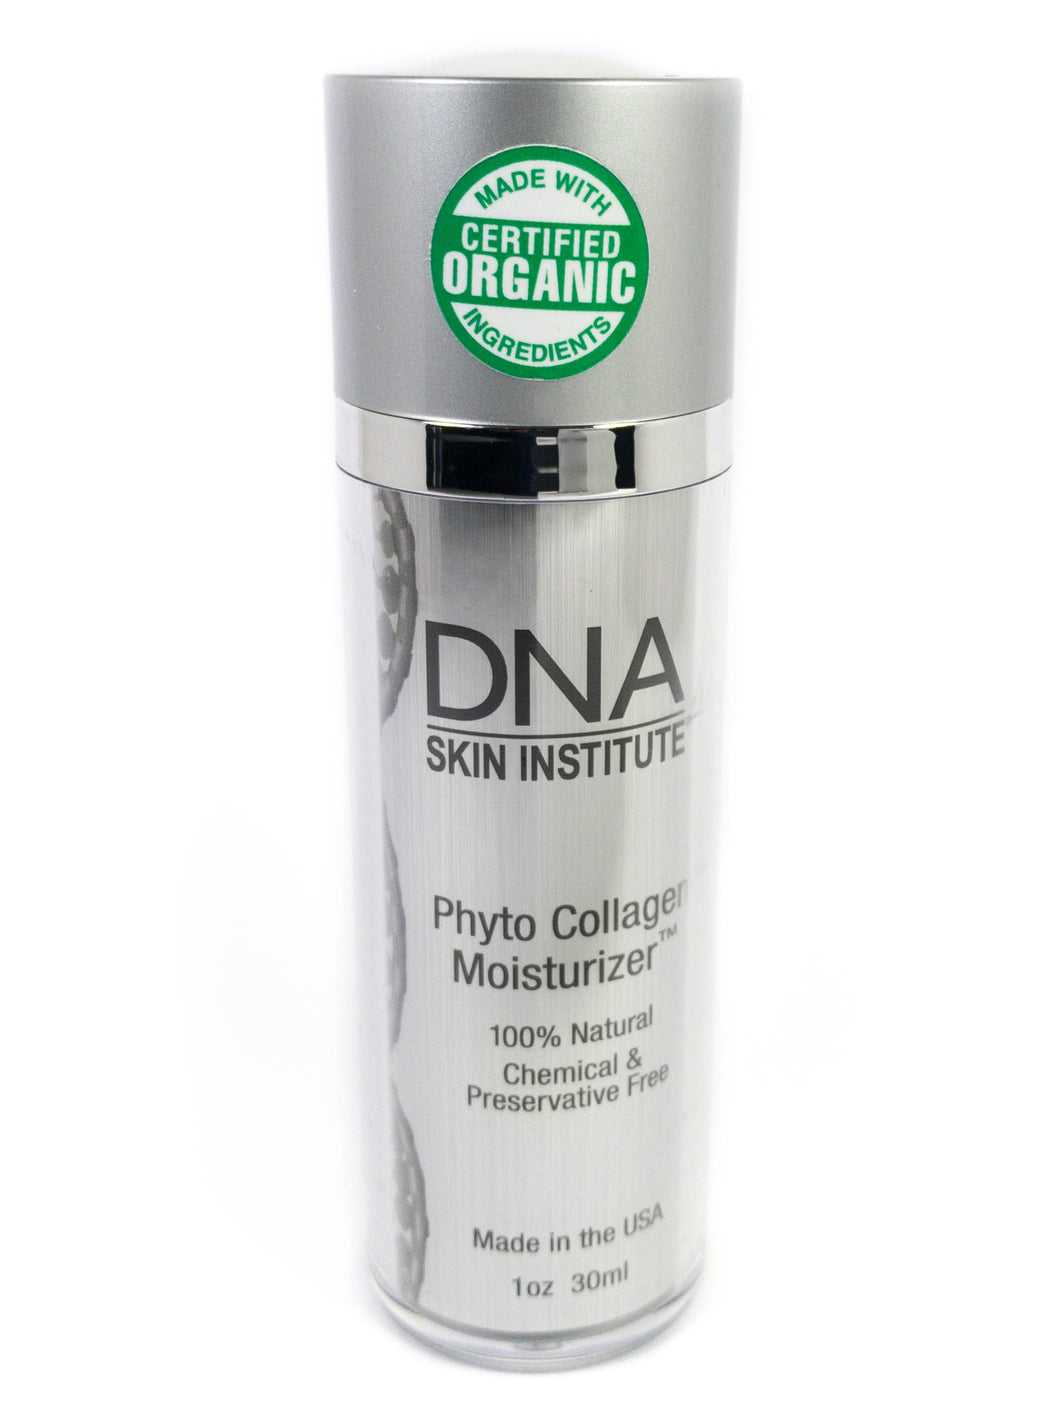 PHYTO COLLAGEN MOISTURIZER™